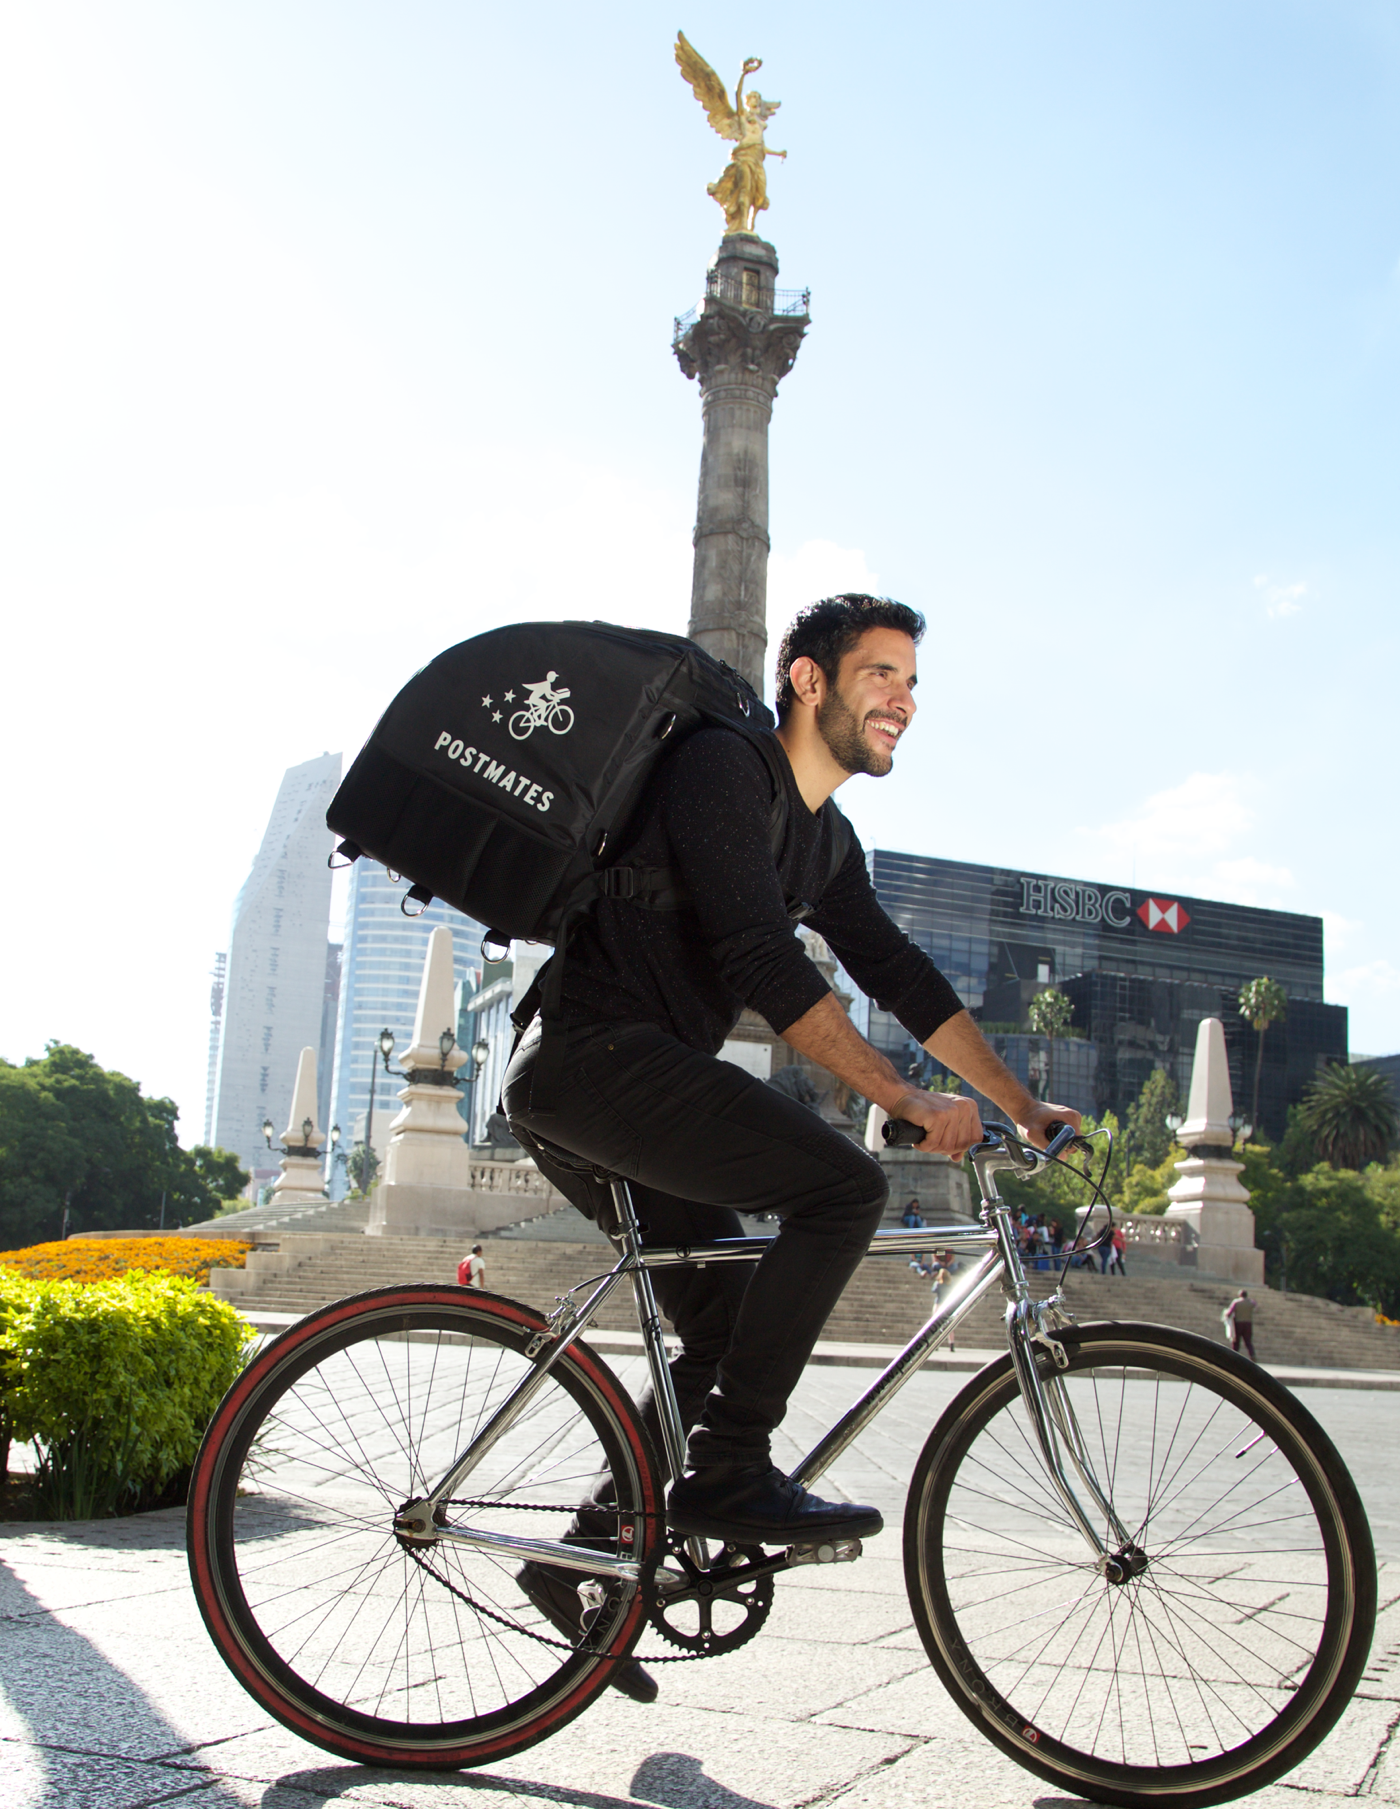 A Postmates delivery person riding a bike